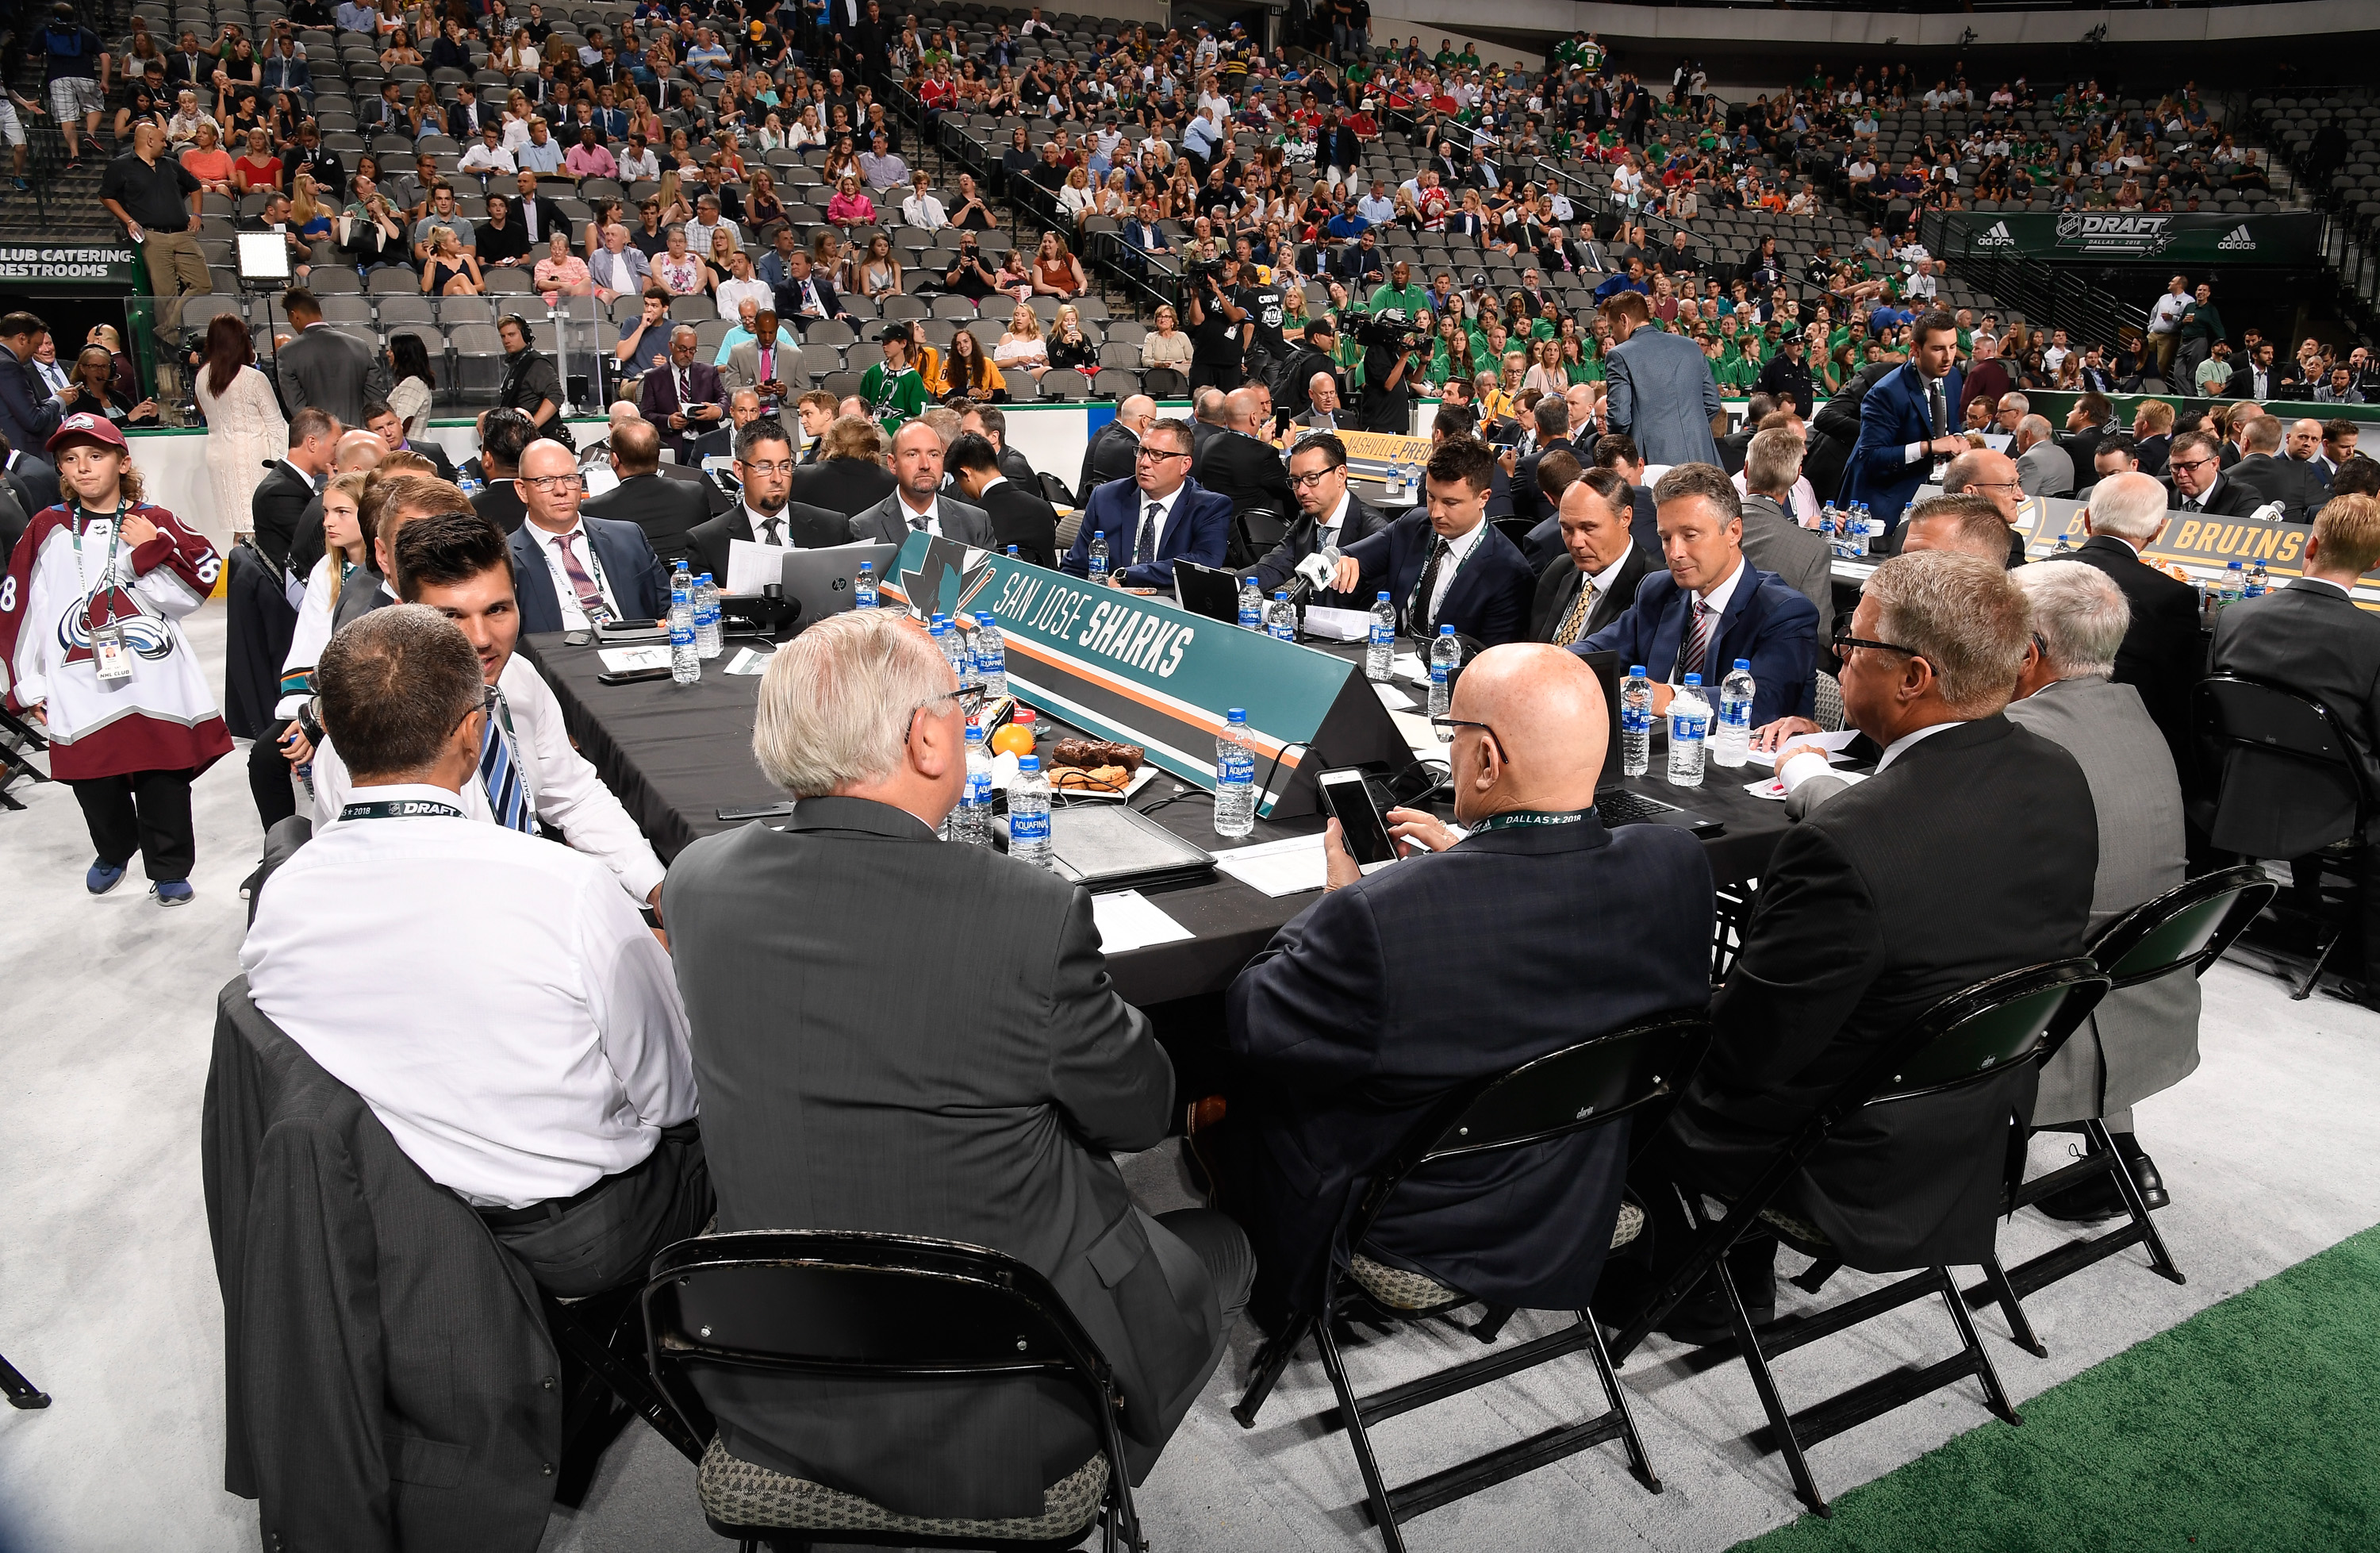 DALLAS, TX - JUNE 22: A general view of the San Jose Sharks draft table is seen during the first round of the 2018 NHL Draft at American Airlines Center on June 22, 2018 in Dallas, Texas.